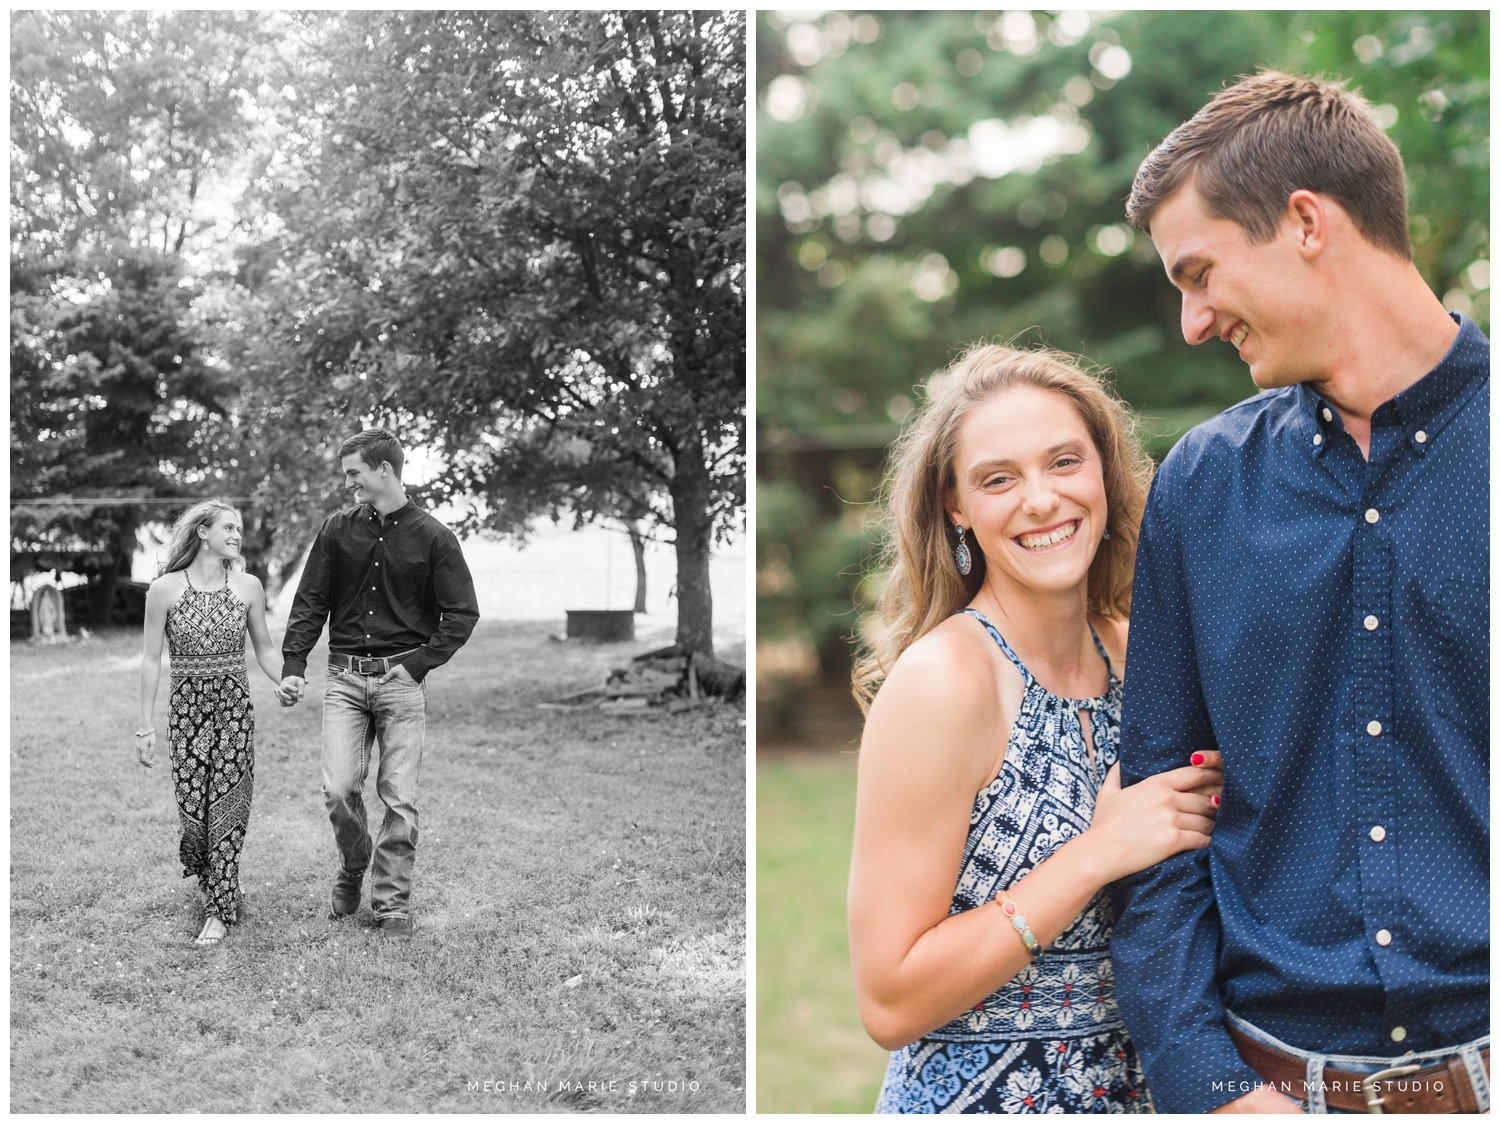 meghan marie studio wedding photographer ohio troy dayton columbus small town rustic rural farm cows russia shelby county barns antique vintage engagement lauren heaton_0549.jpg